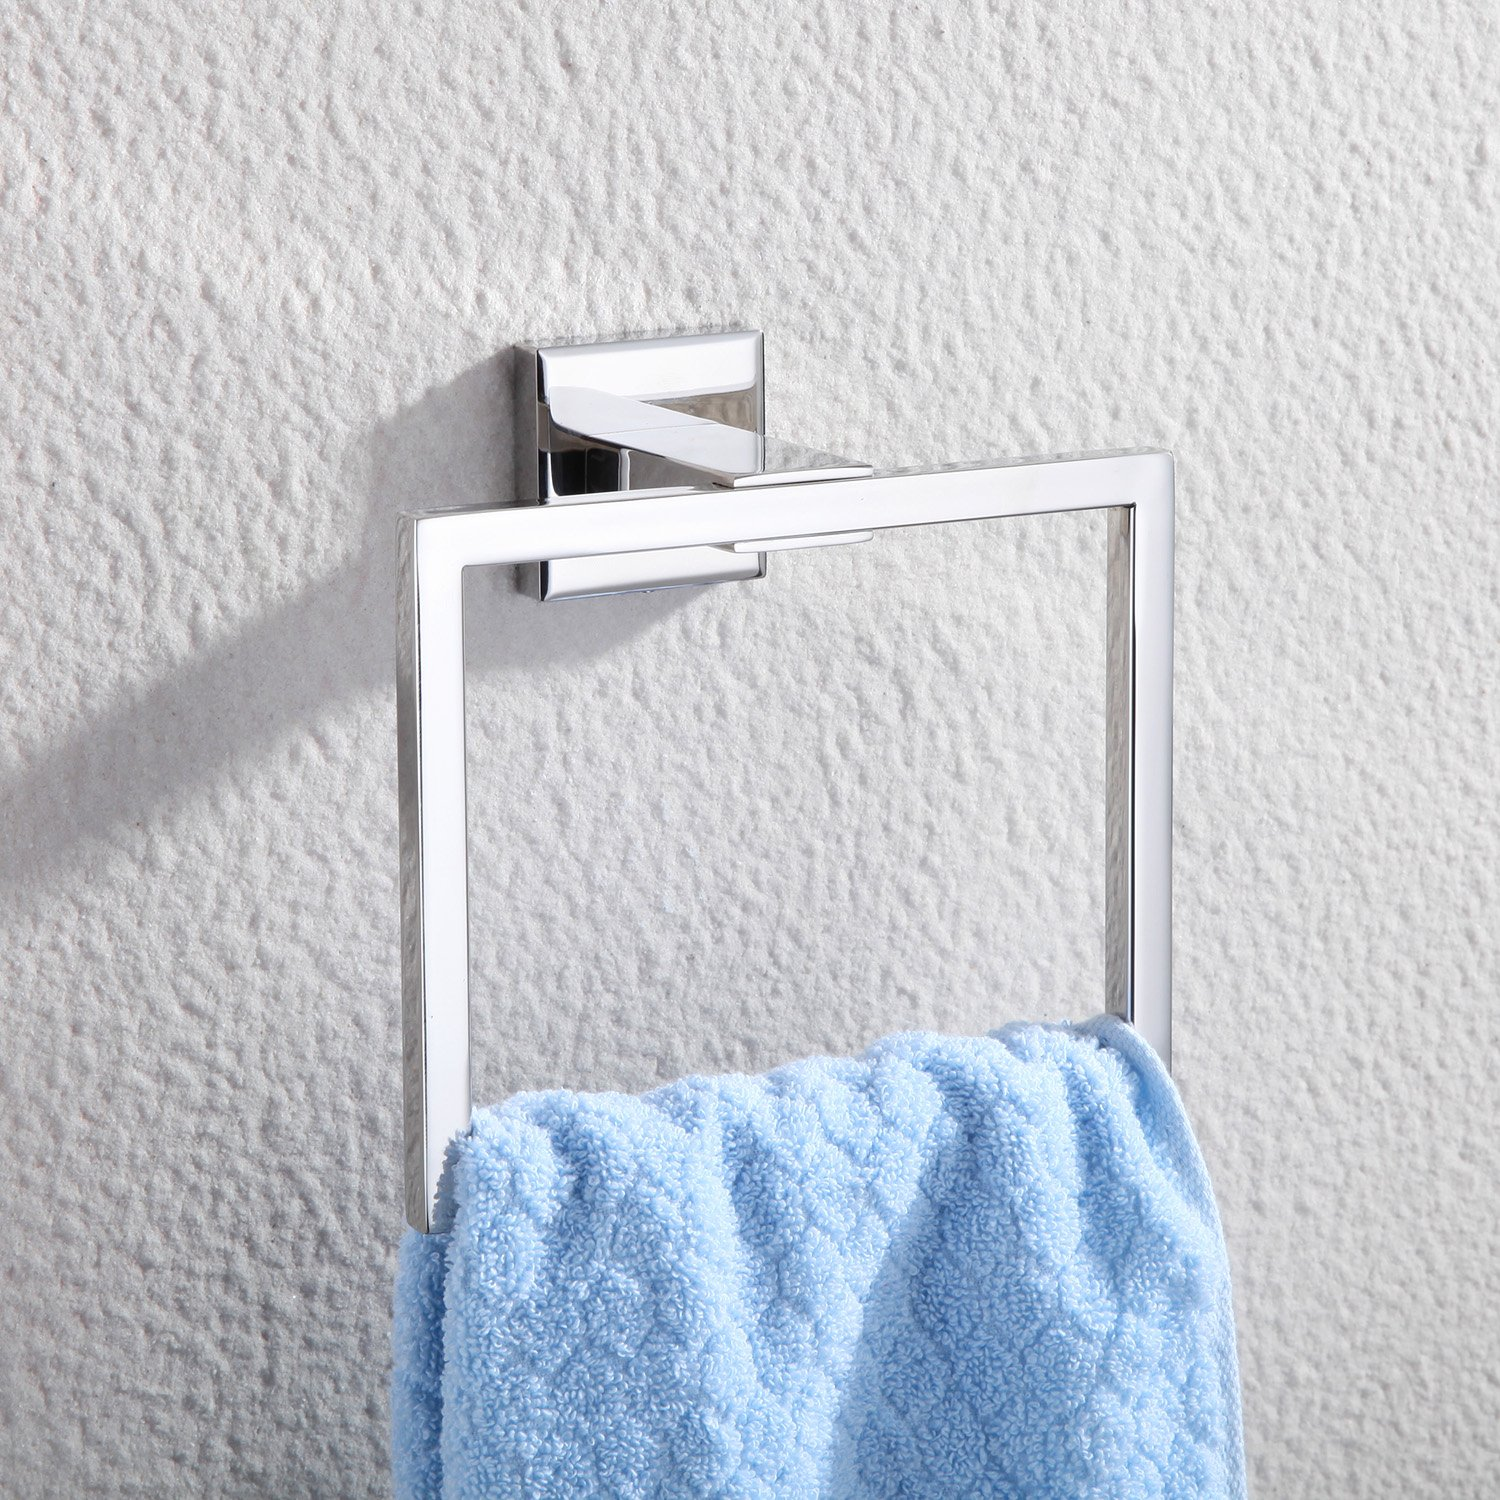 Haiying Bath Towel Holder Hand Towel Ring Hanging Towel Hanger Bathroom Accessories Contemporary Hotel Square Style Wall Mount,Polished SUS 304 Stainless Steel Finish